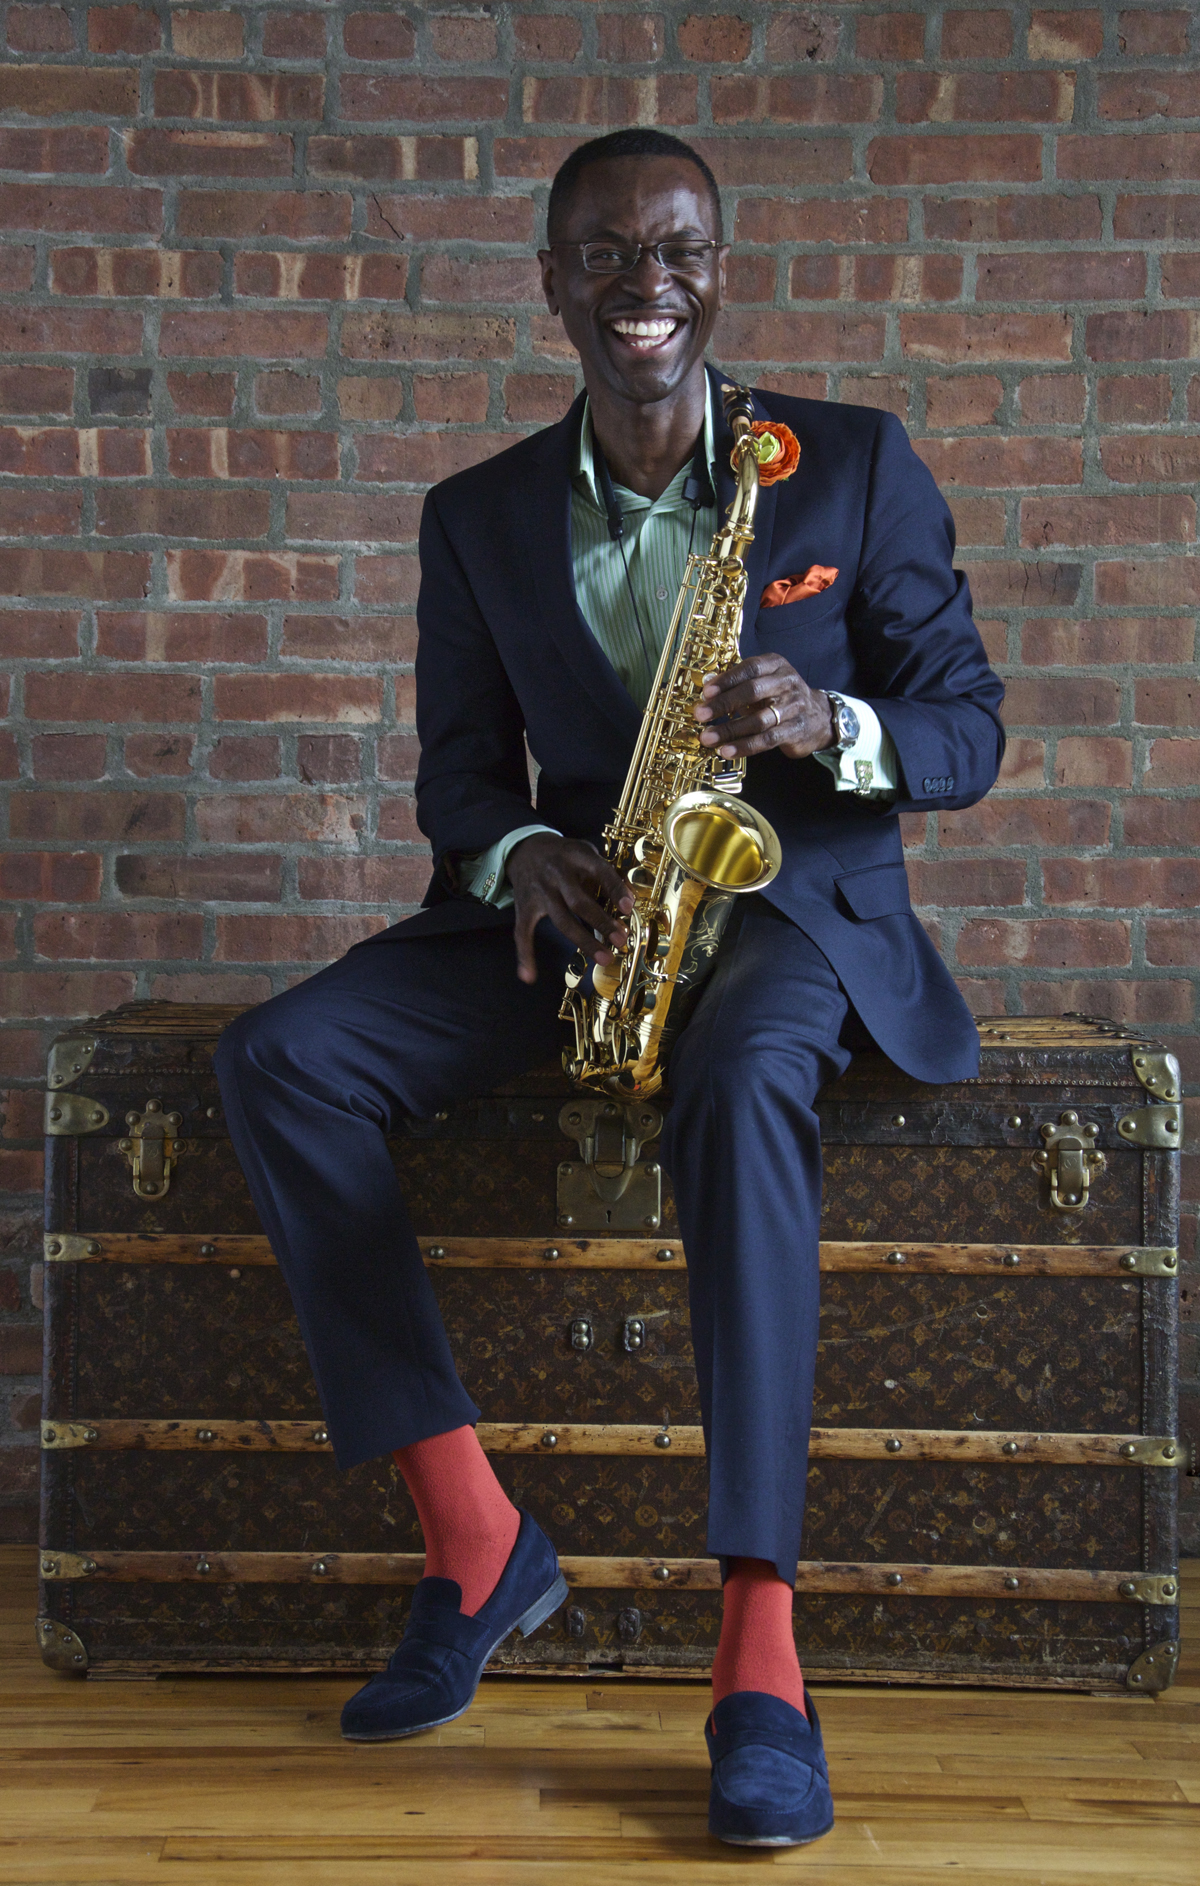 Mark Gross, saxophonist